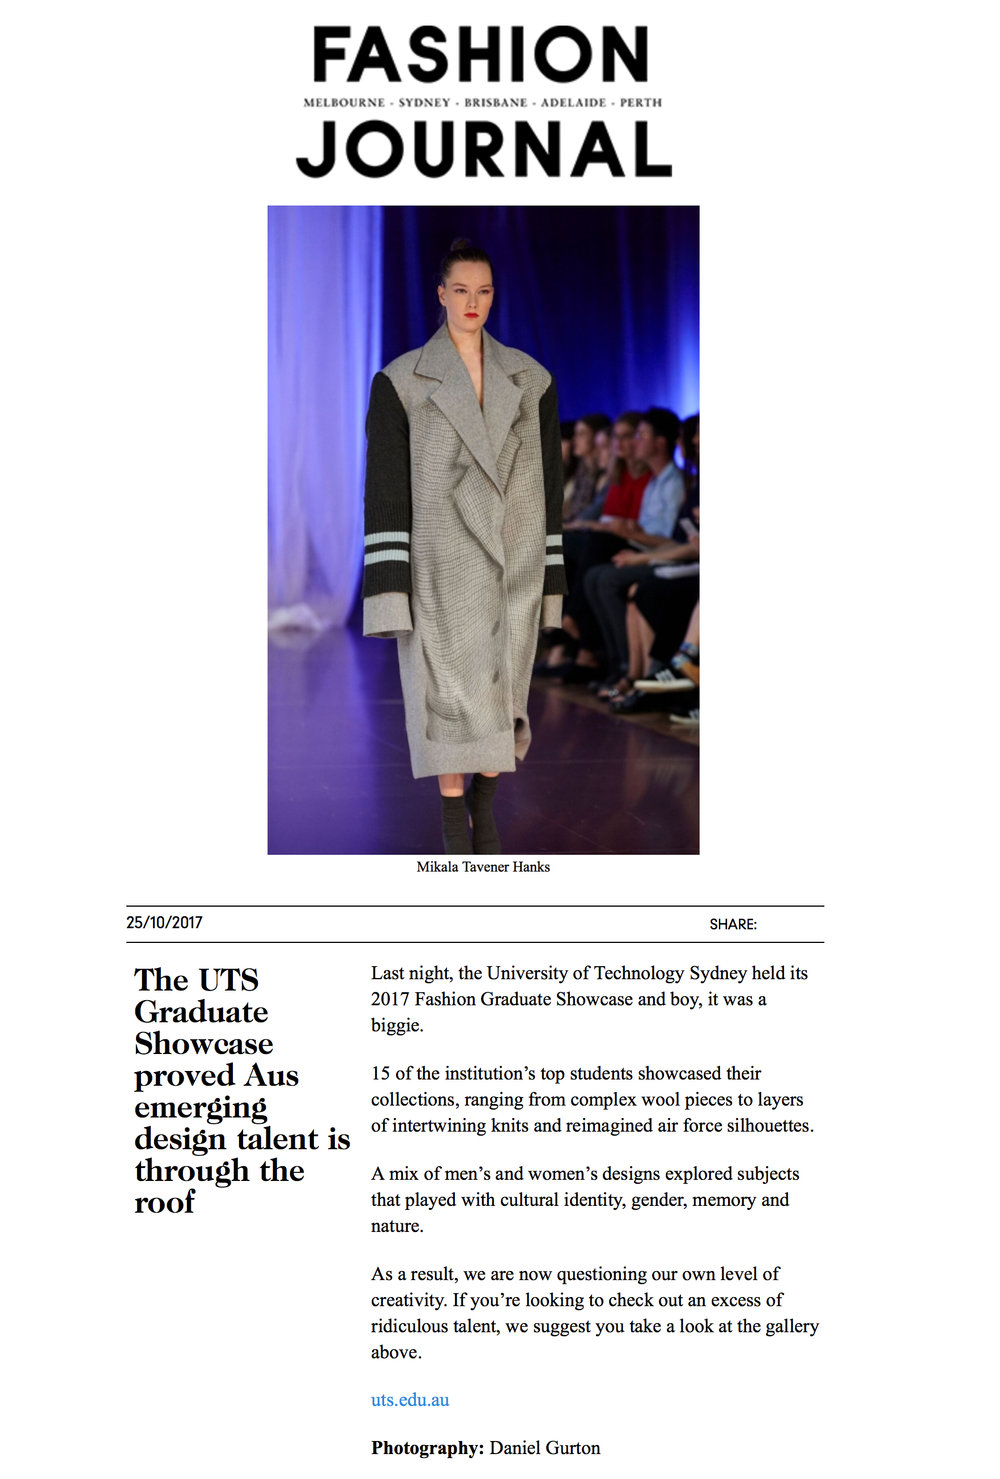 FASHION JOURNAL | THE UTS GRADUATE SHOWCASE